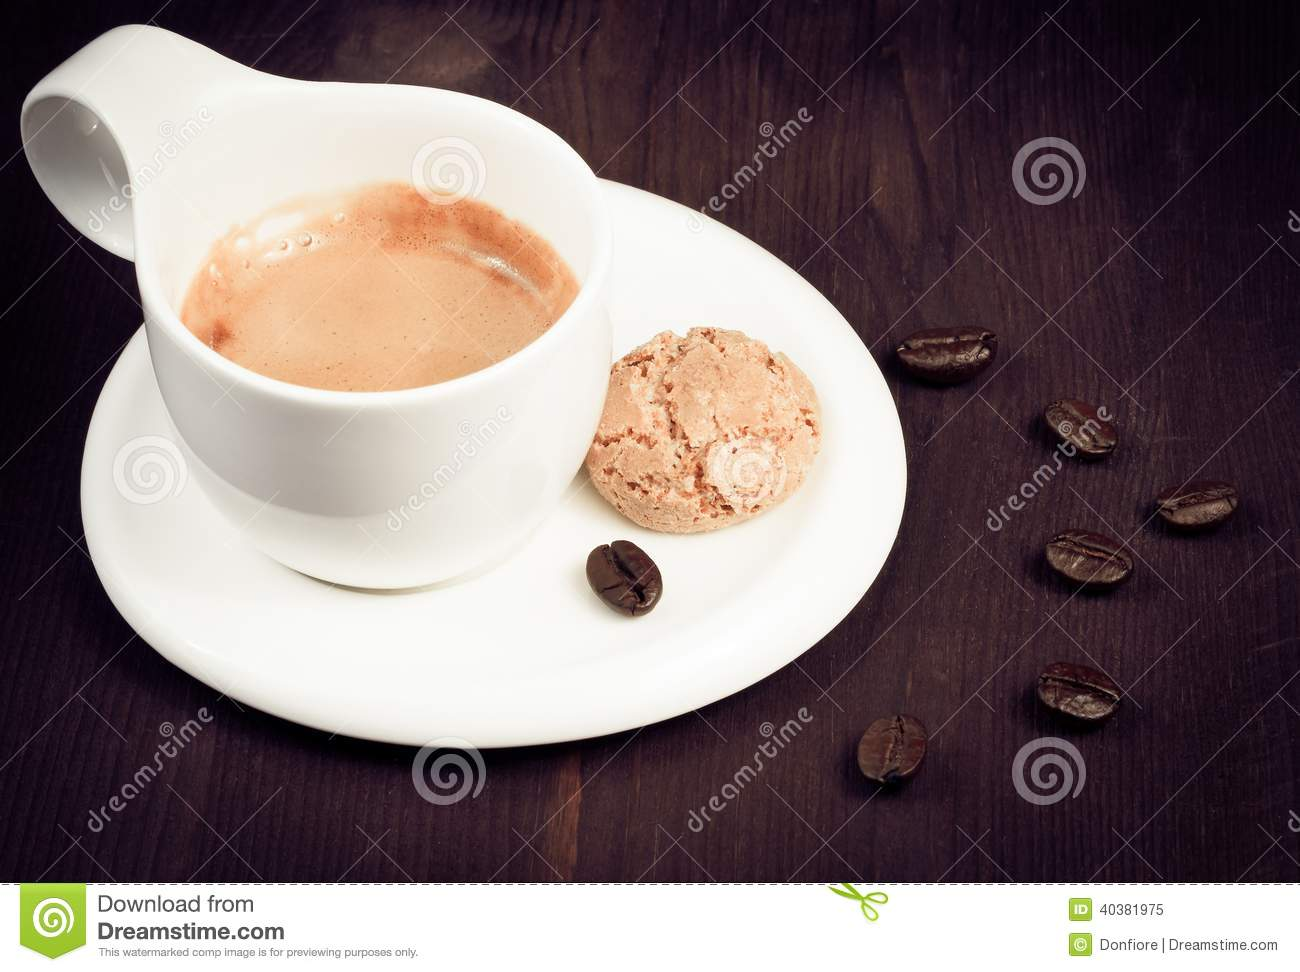 ... Photo: Cup of espresso coffee and biscuit near coffee beans, old style